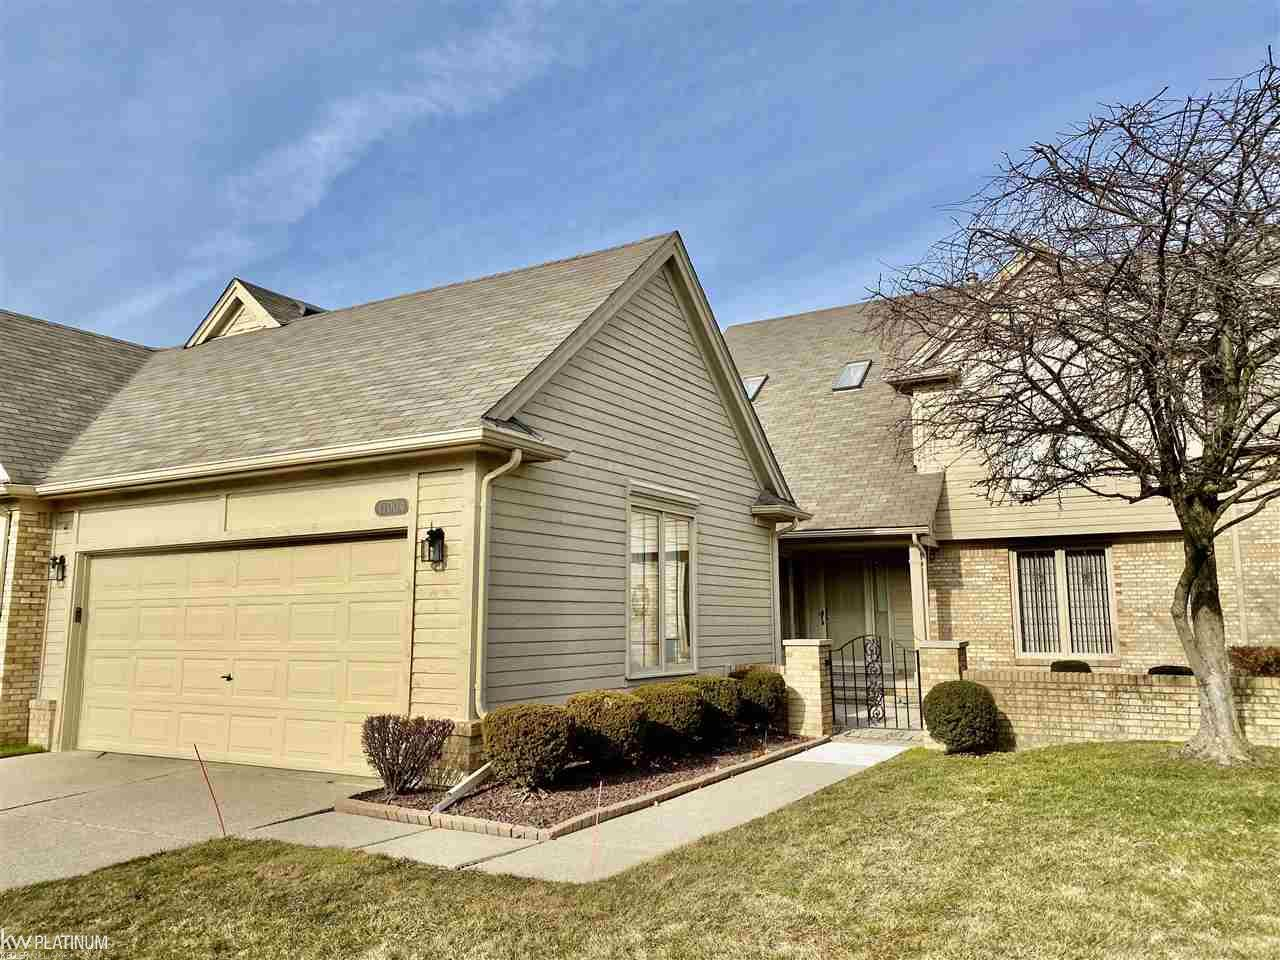 Very desirable Macomb Twp. location.  Well cared for condo overlooks pond!  2 bedrooms 3 full baths, den, 2nd floor loft and full basement.  Master suite with double closets, full bath with separate shower.  Den with full window overlooking private front courtyard. Large great room has double door walls to deck.  2 car attached garage